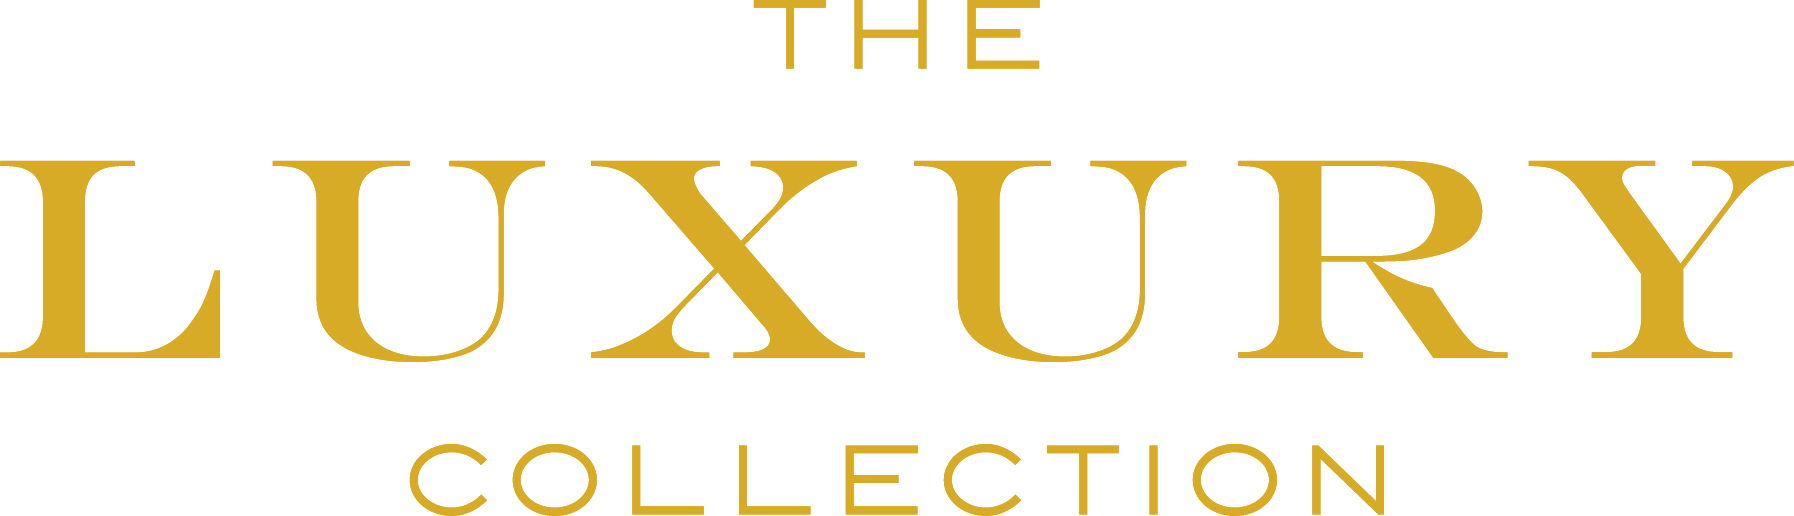 Luxury Collection logo2